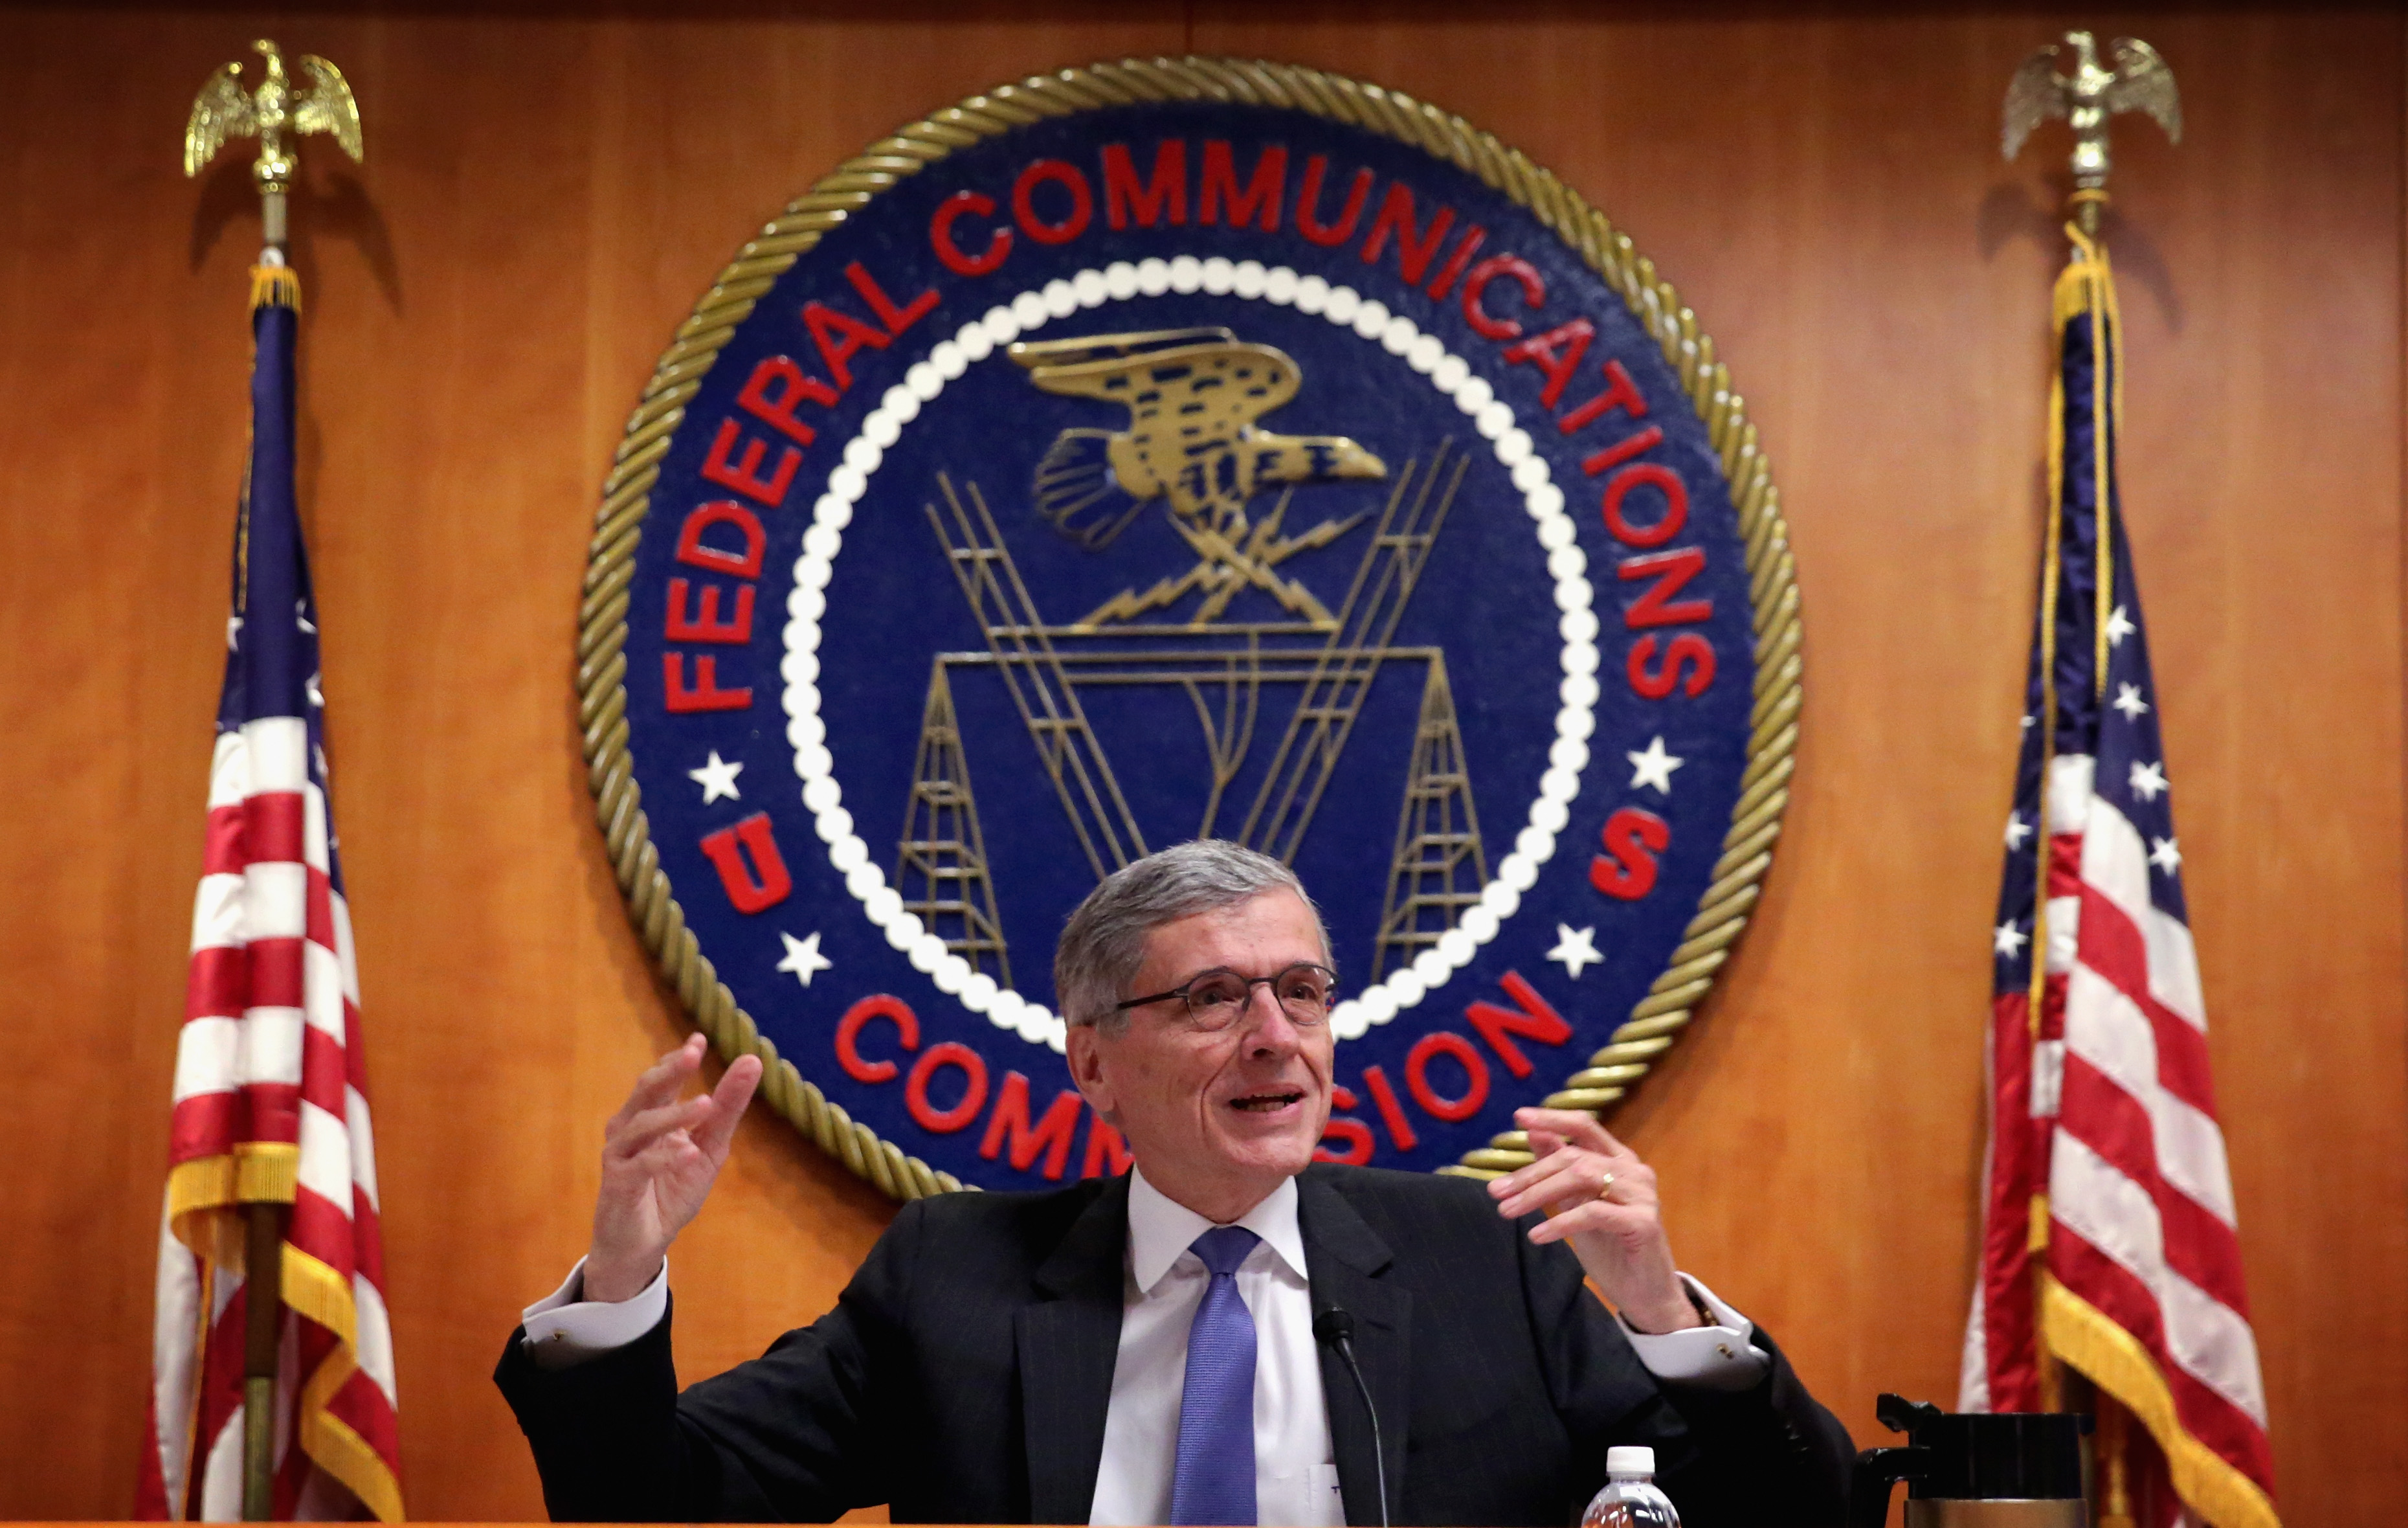 Federal Communications Commission (FCC) Chairman Tom Wheeler speaks during an open meeting to receive public comment on proposed open Internet notice of proposed rulemaking and spectrum auctions May 15, 2014 at the FCC headquarters in Washington, DC. The FCC has voted in favor of a proposal to reform net neutrality and could allow Internet service providers to charge for faster and higher-quality service. (Photo by Alex Wong/Getty Images)